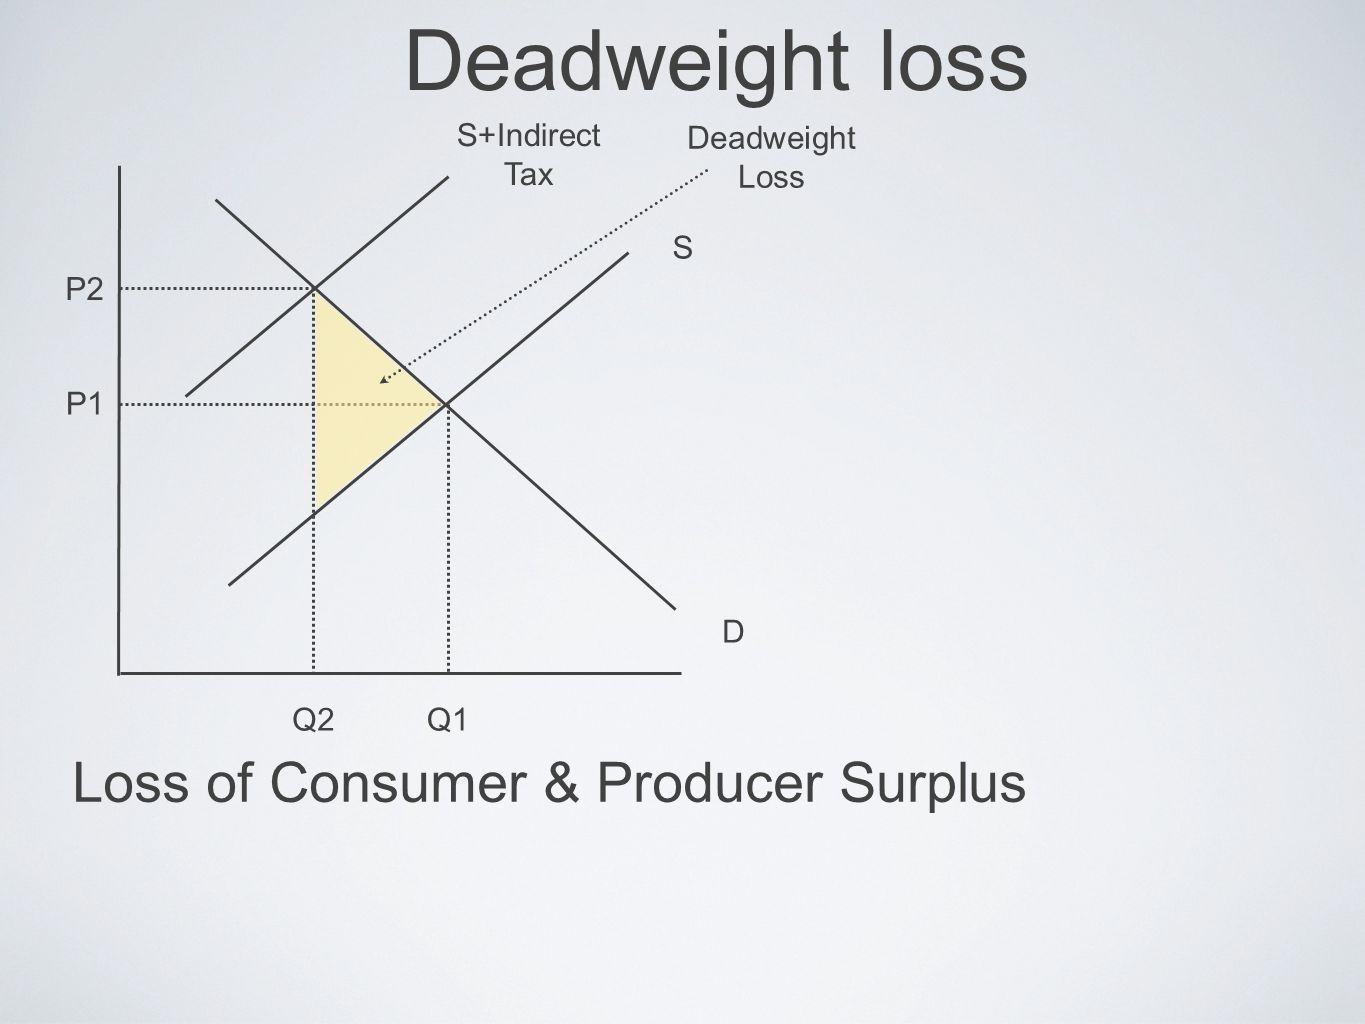 Deadweight loss Loss of Consumer & Producer Surplus P2 P1 Q2Q1 D S Deadweight Loss S+Indirect Tax